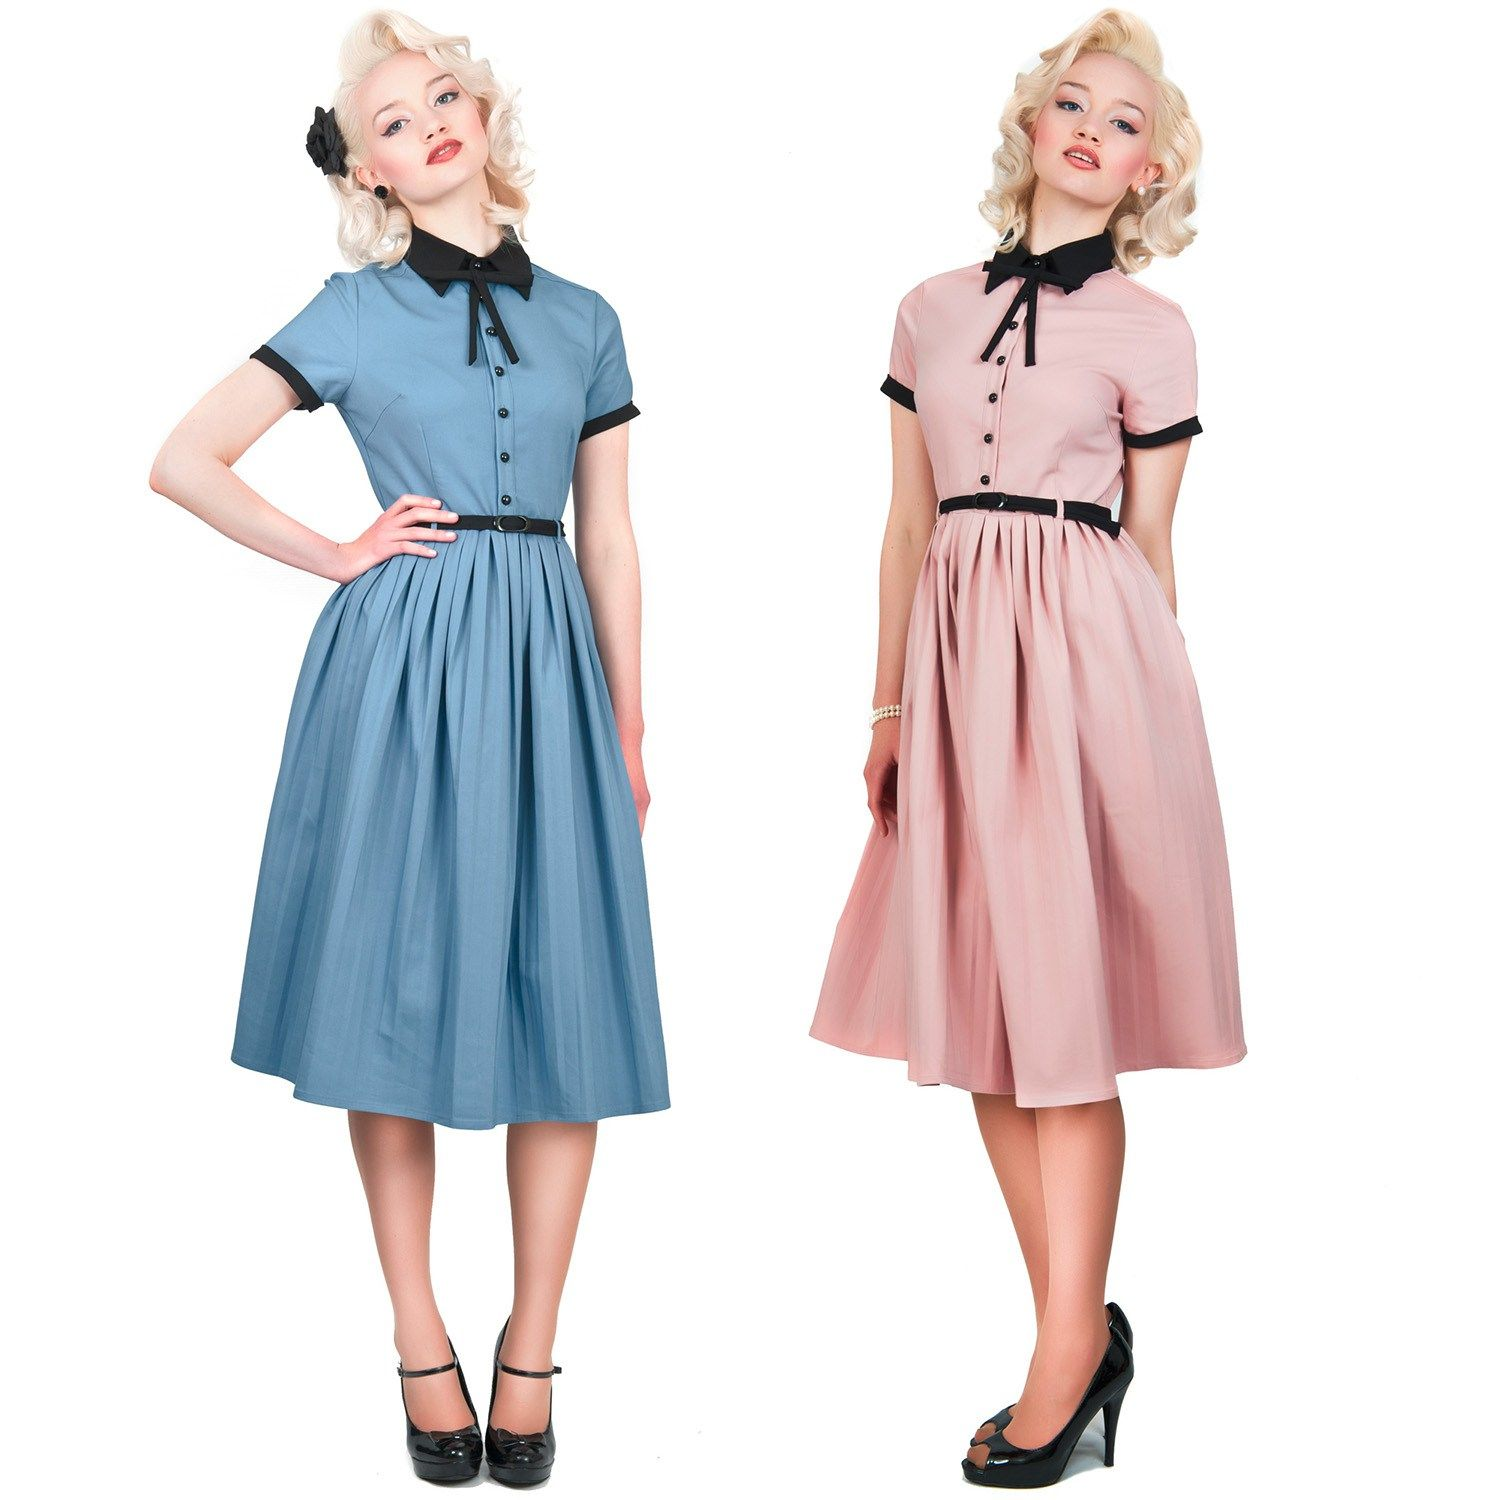 50S Vintage Clothing | Beauty Clothes. scpxt.com | vintage and ...